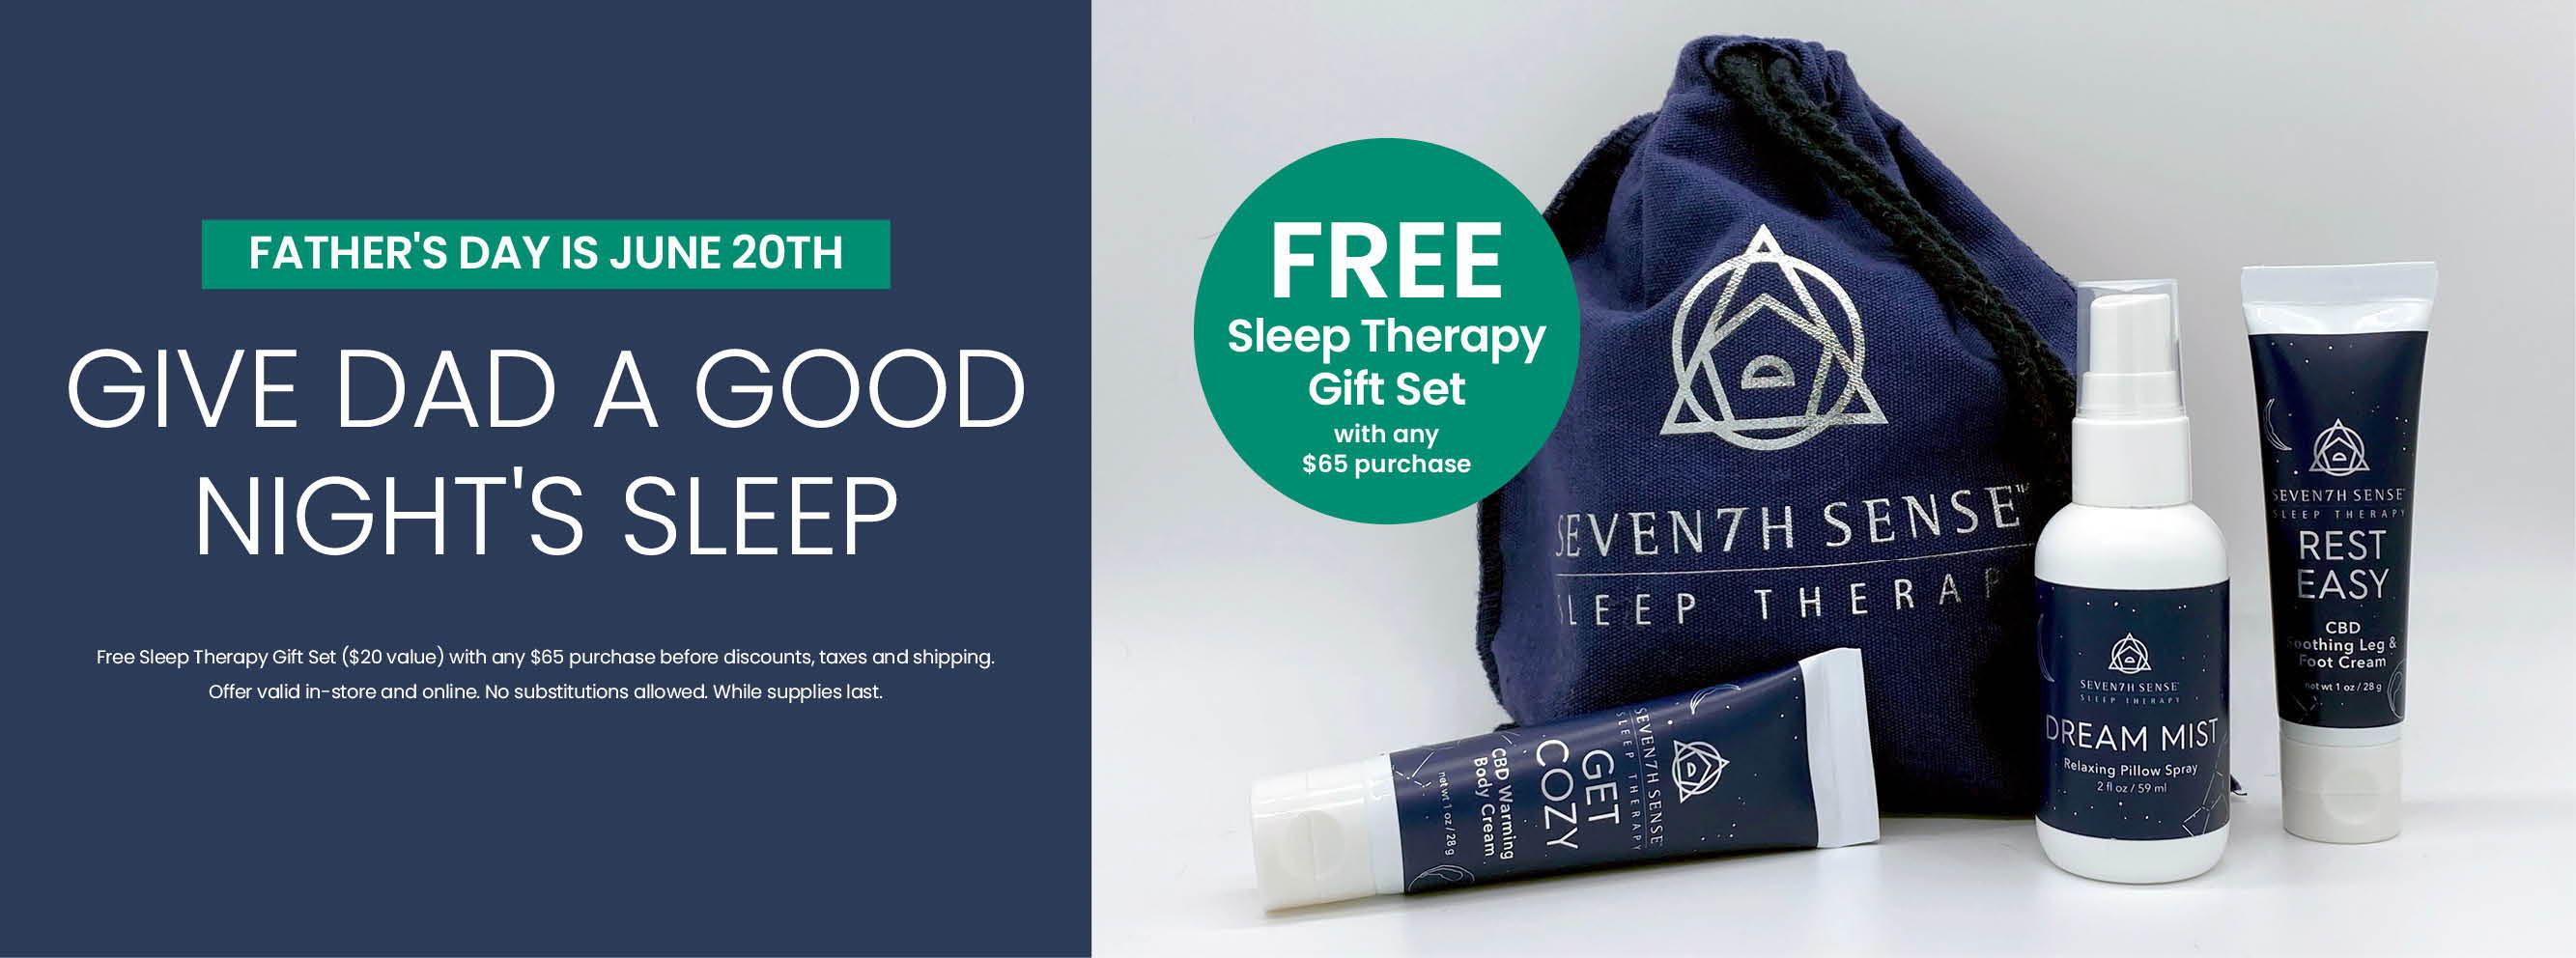 Free Sleep Therapy Gift Set with any $65 purchase